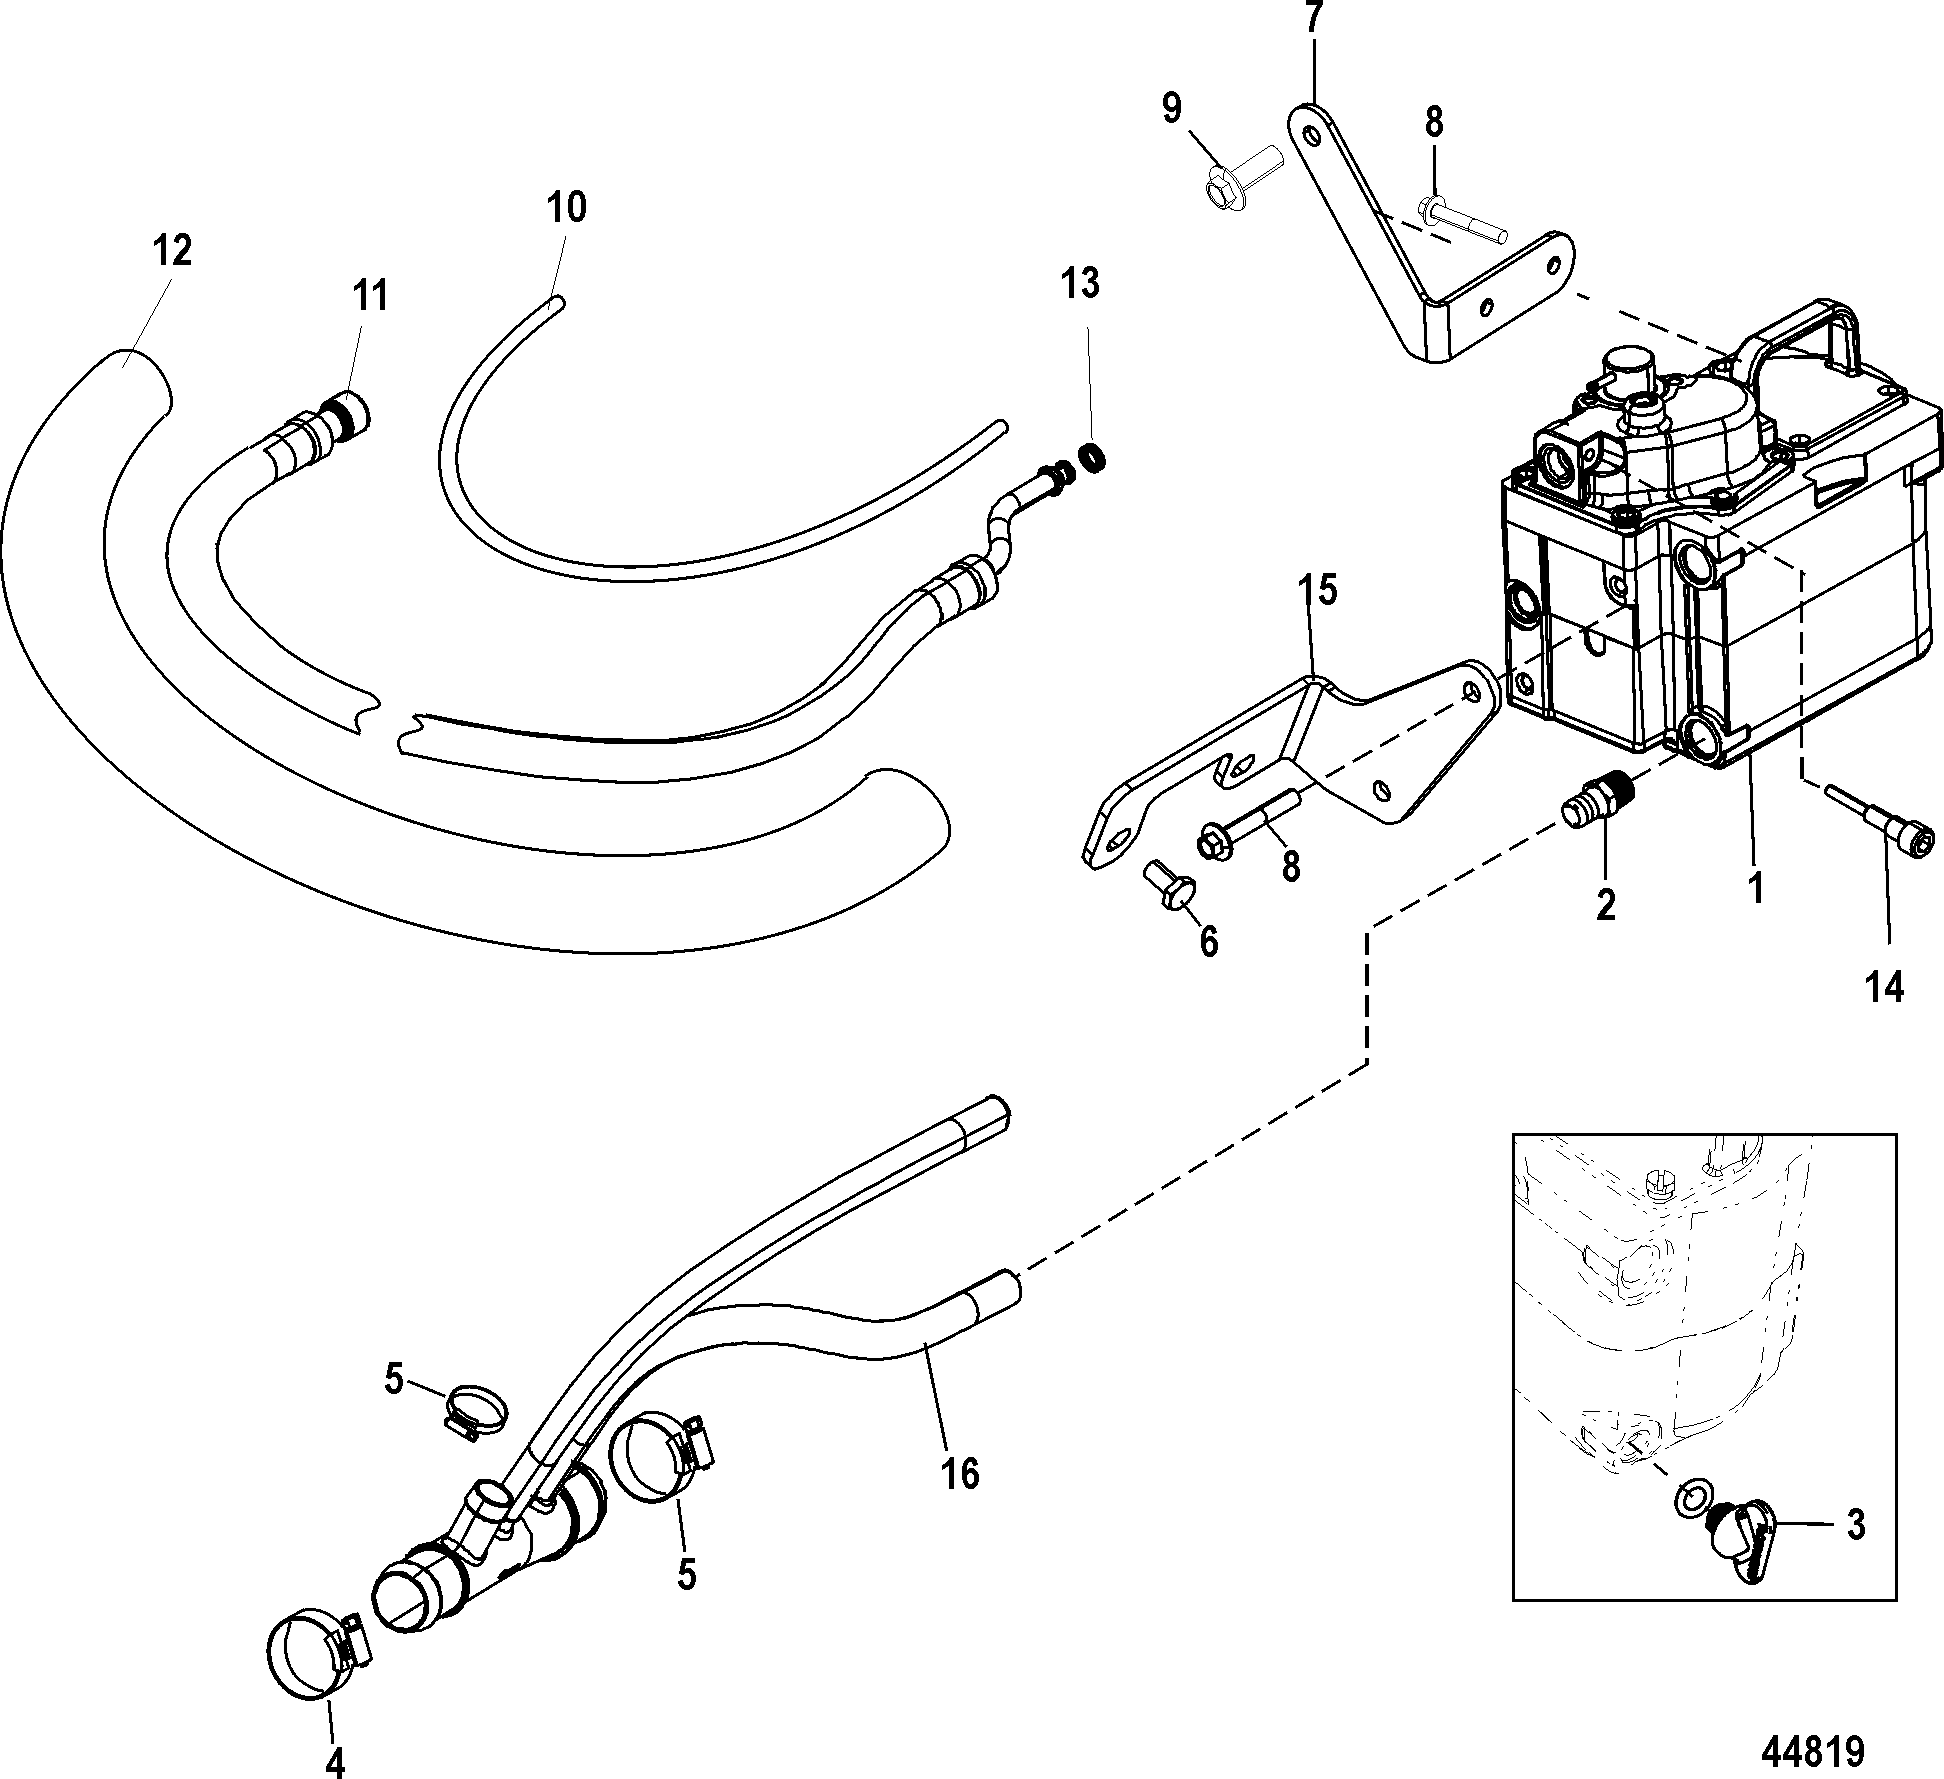 Mercruiser 165 Wiring Diagram in addition Id25 additionally Volvo Sterndrives Exploded View Lower Gear Housing C 23 27 399 464 together with 14916 together with Show product. on mercruiser alpha one sterndrive